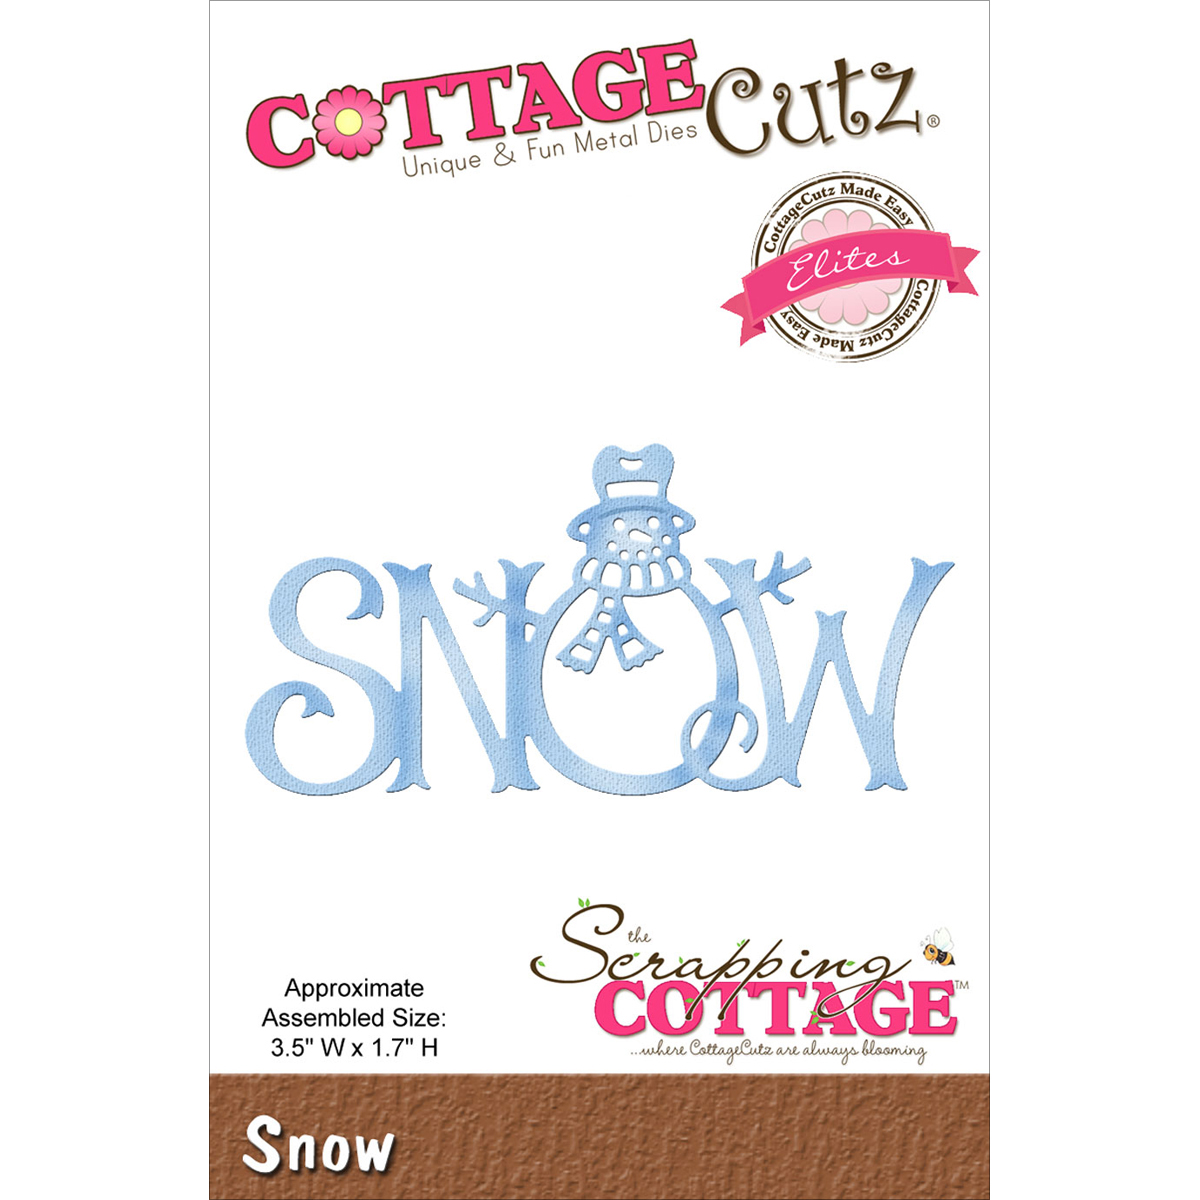 "CottageCutz Elites Die, Snow, 3.5"" x 1.7"""